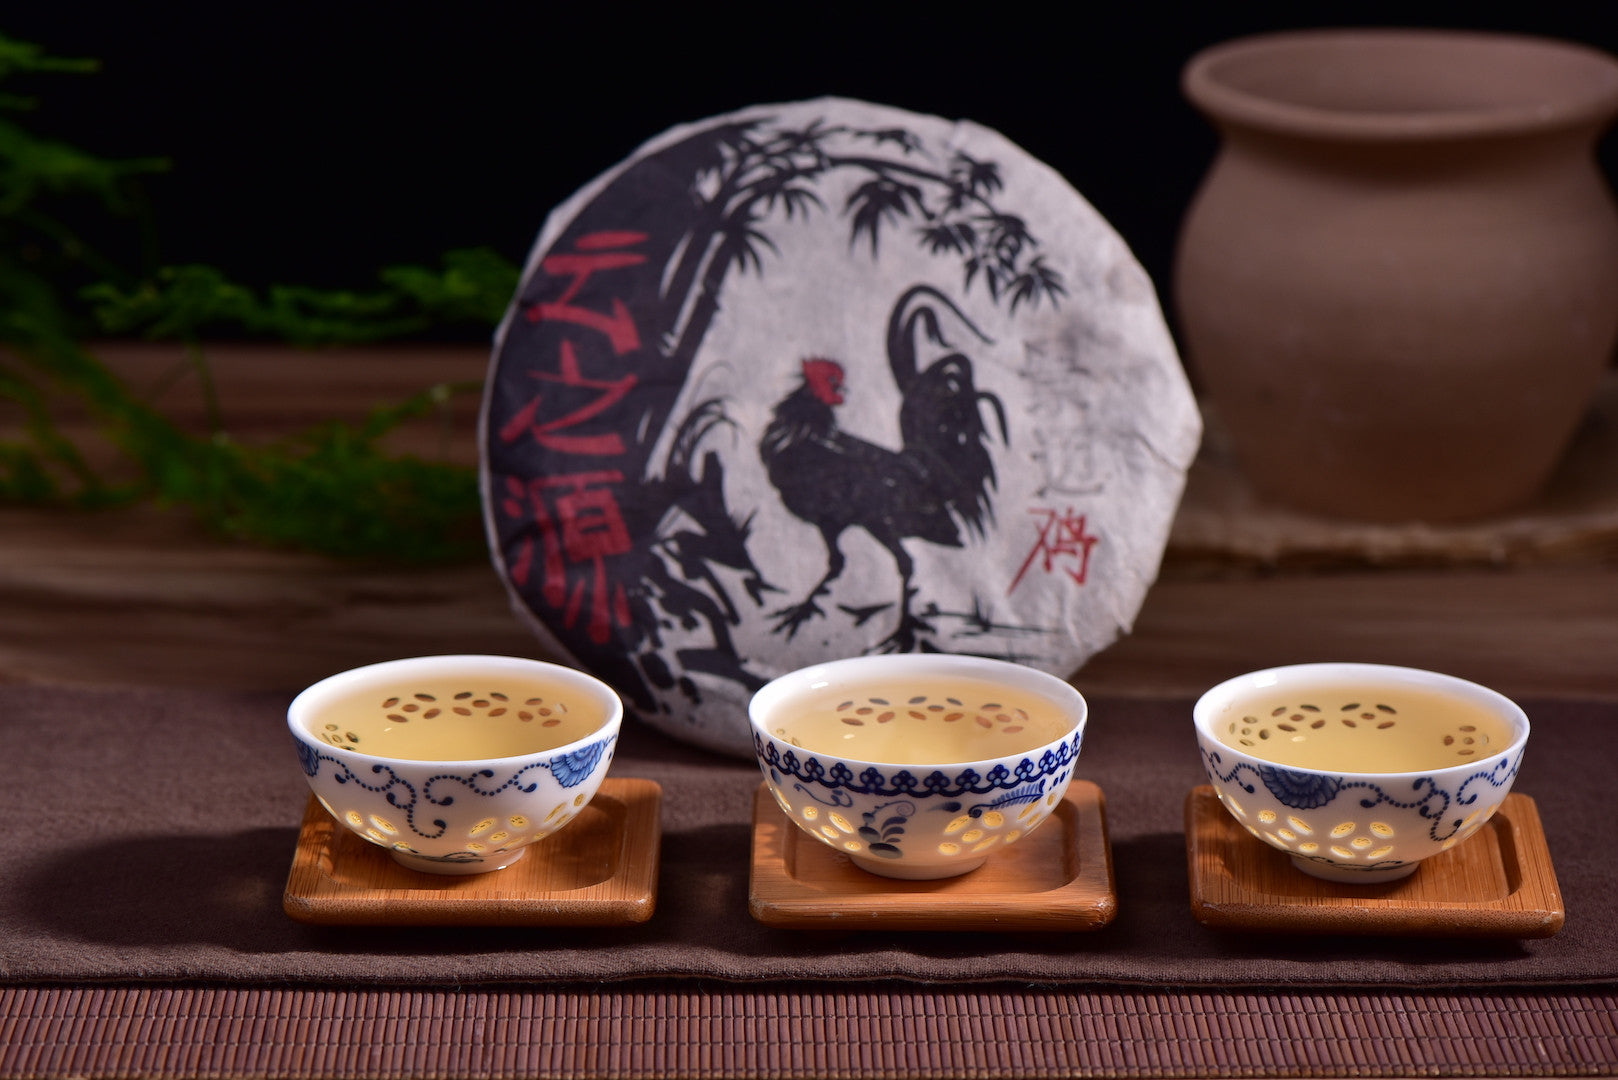 lancang black singles Yunnan gold is a beautiful full-bodied and strong black tea sourced from the rich-soiled yunnan province, china the perfect alternative to breakfast tea.